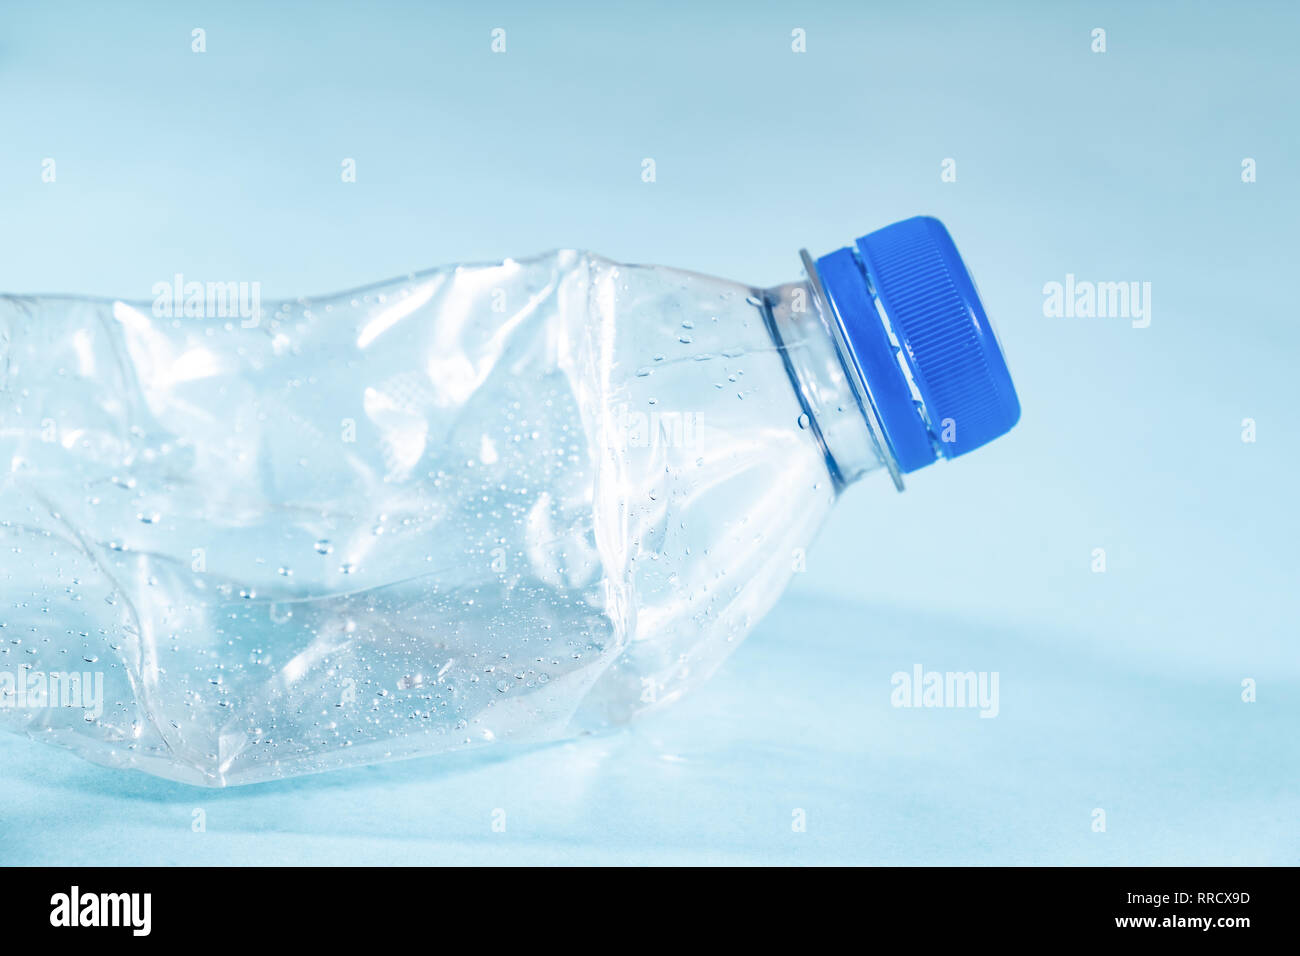 Plastic waste concept: discarded crumpled water bottle in blue background, detailed view. Close-up view of a thrown away single use plastic bottle dep - Stock Image